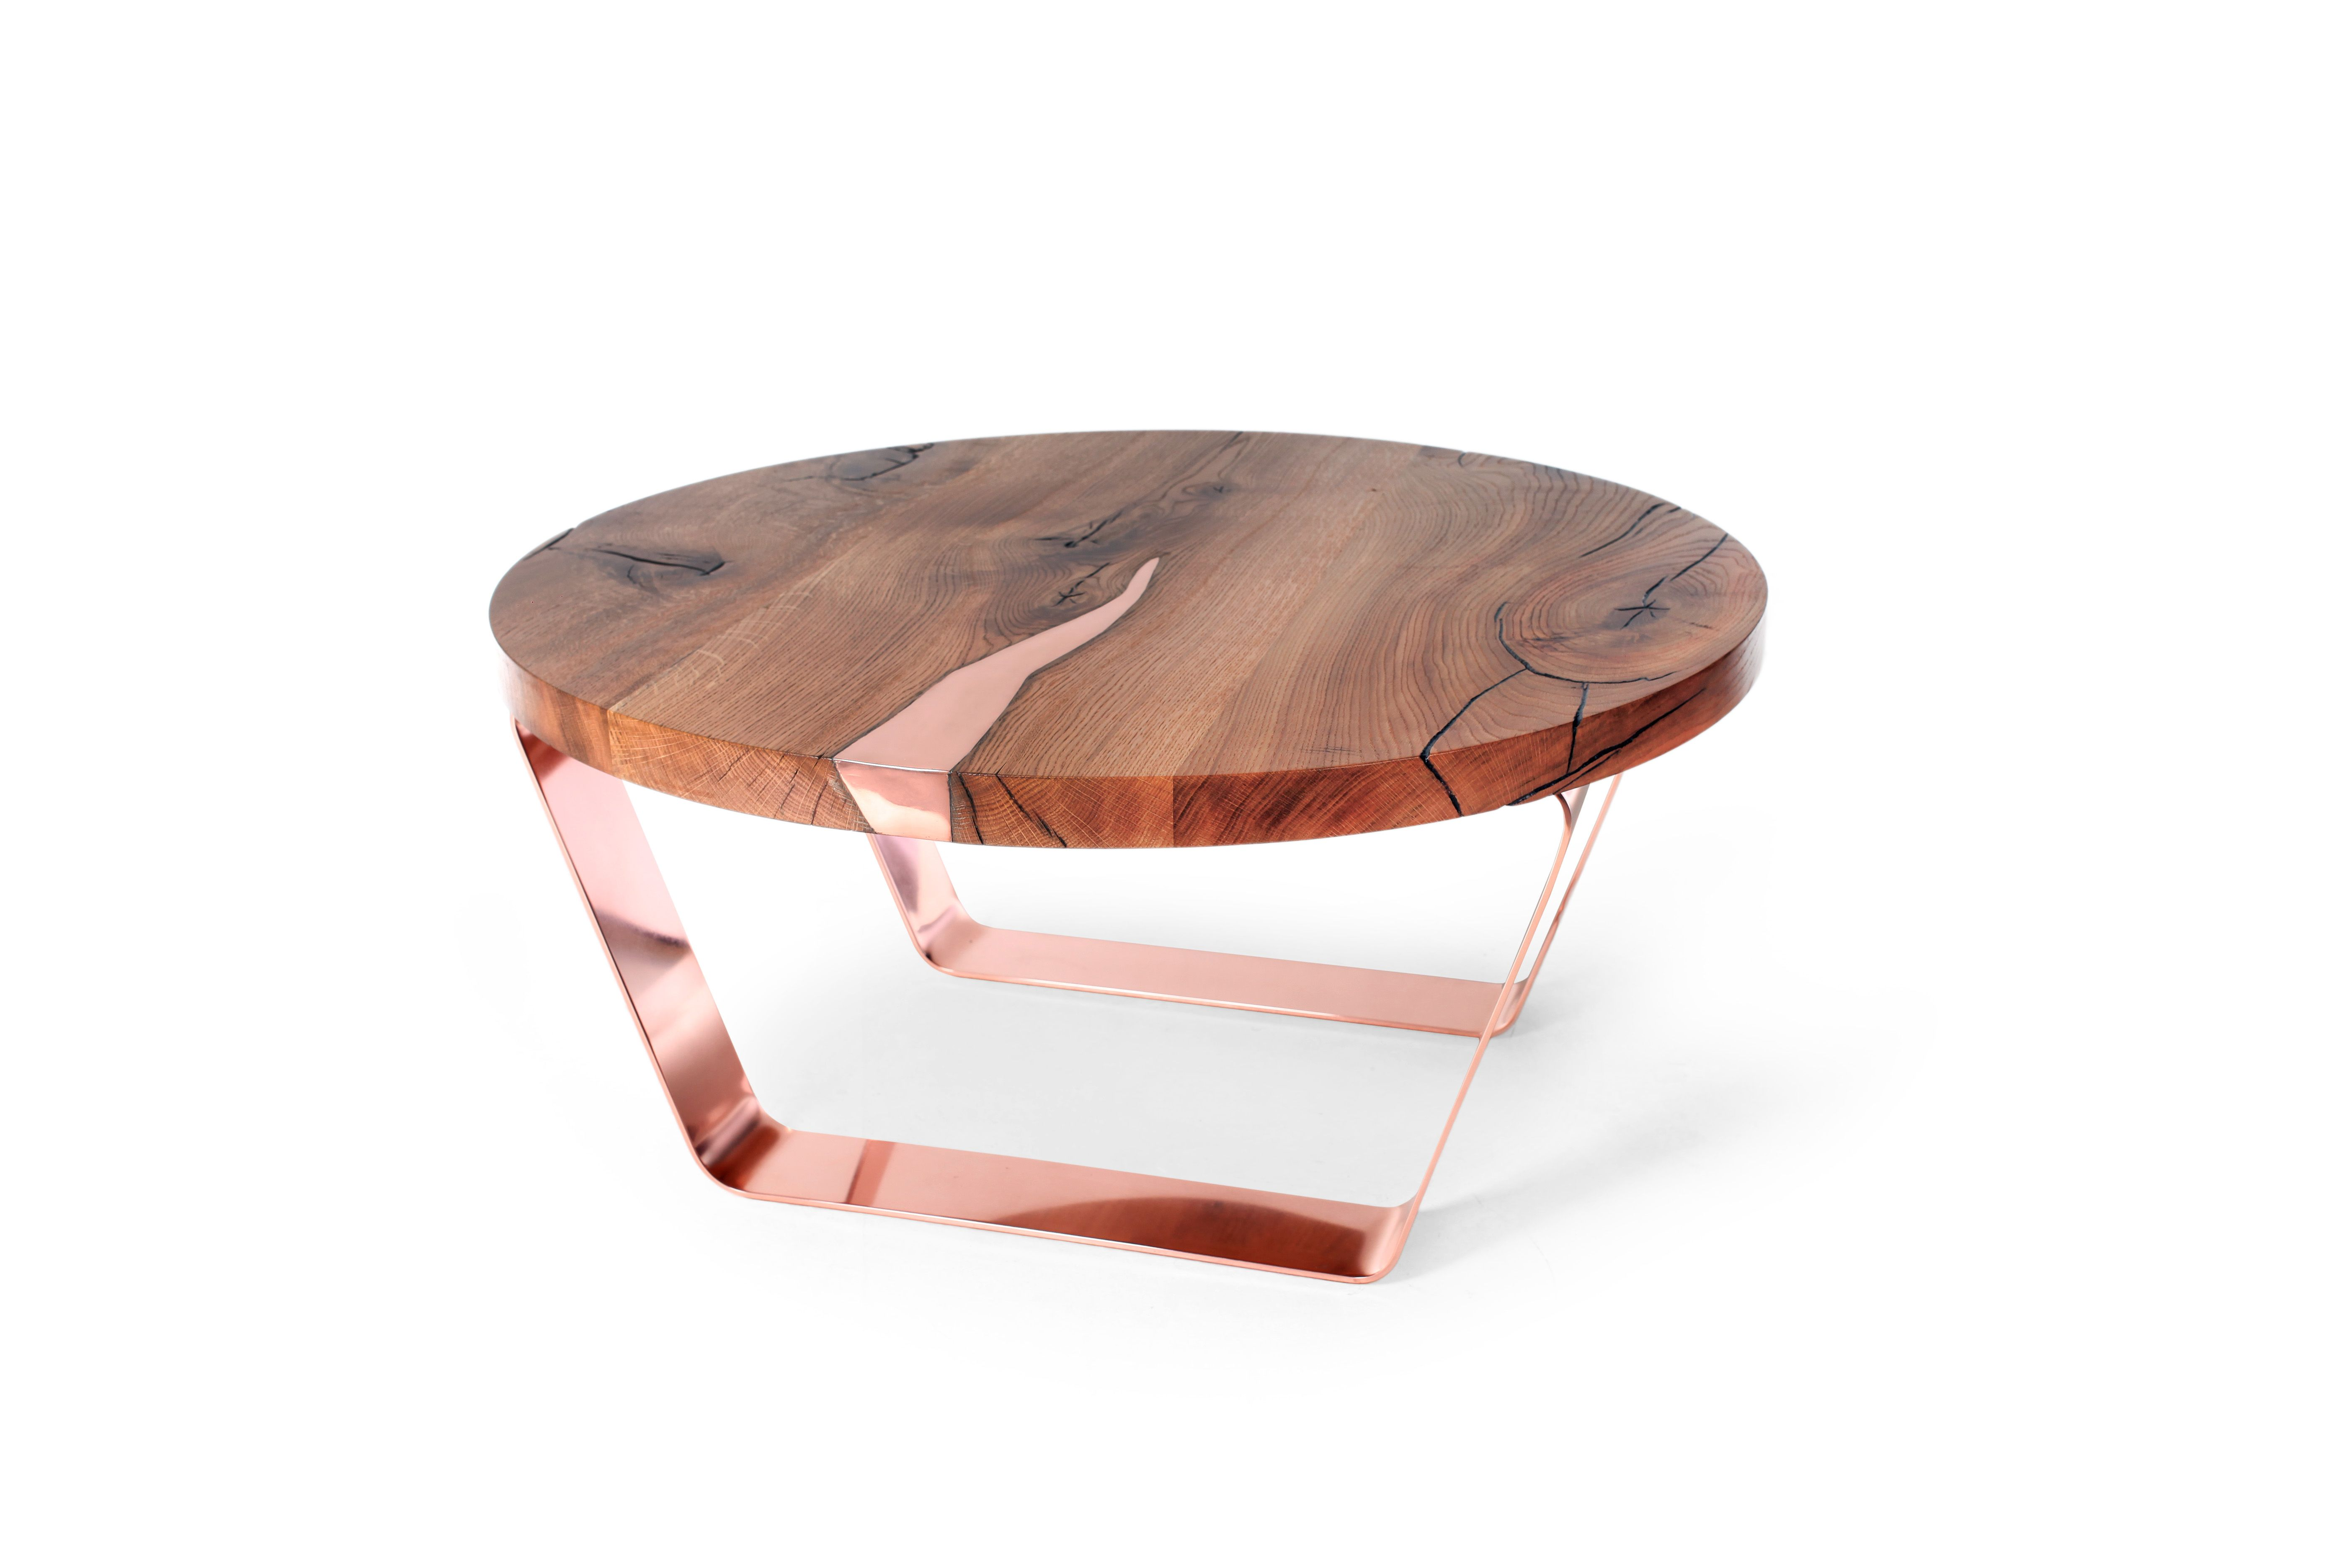 Round Wood Coffee Table With Metal Legs The Amazing Wooden Round Coffee Table With Bright Copper